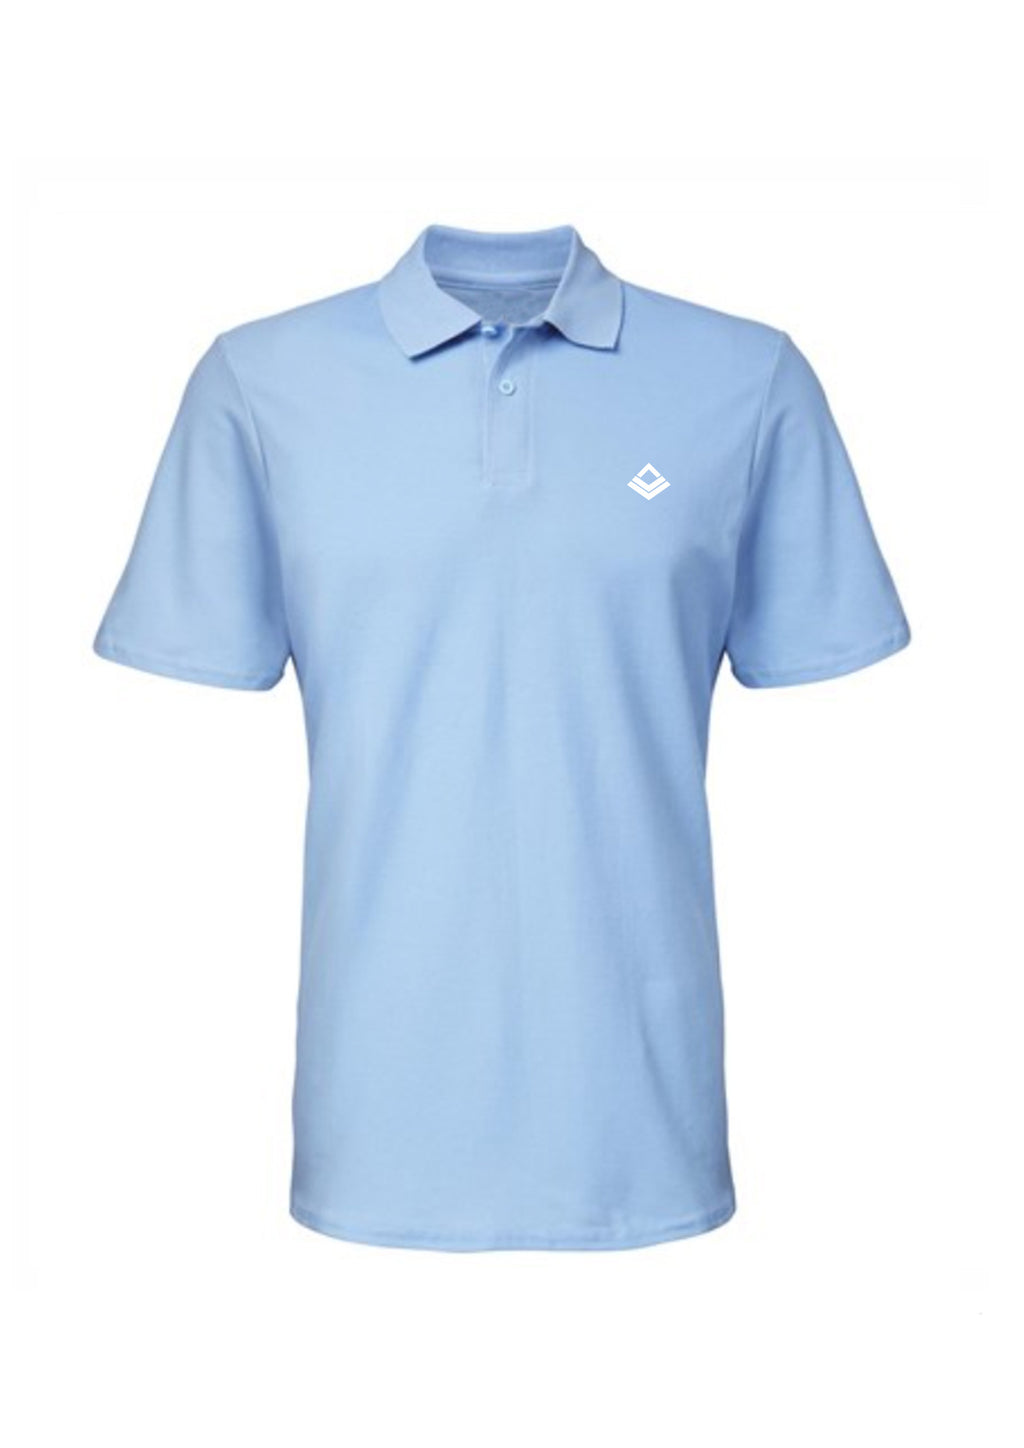 Swaggerlicious Light Blue Simple Polo Shirt with White Logo